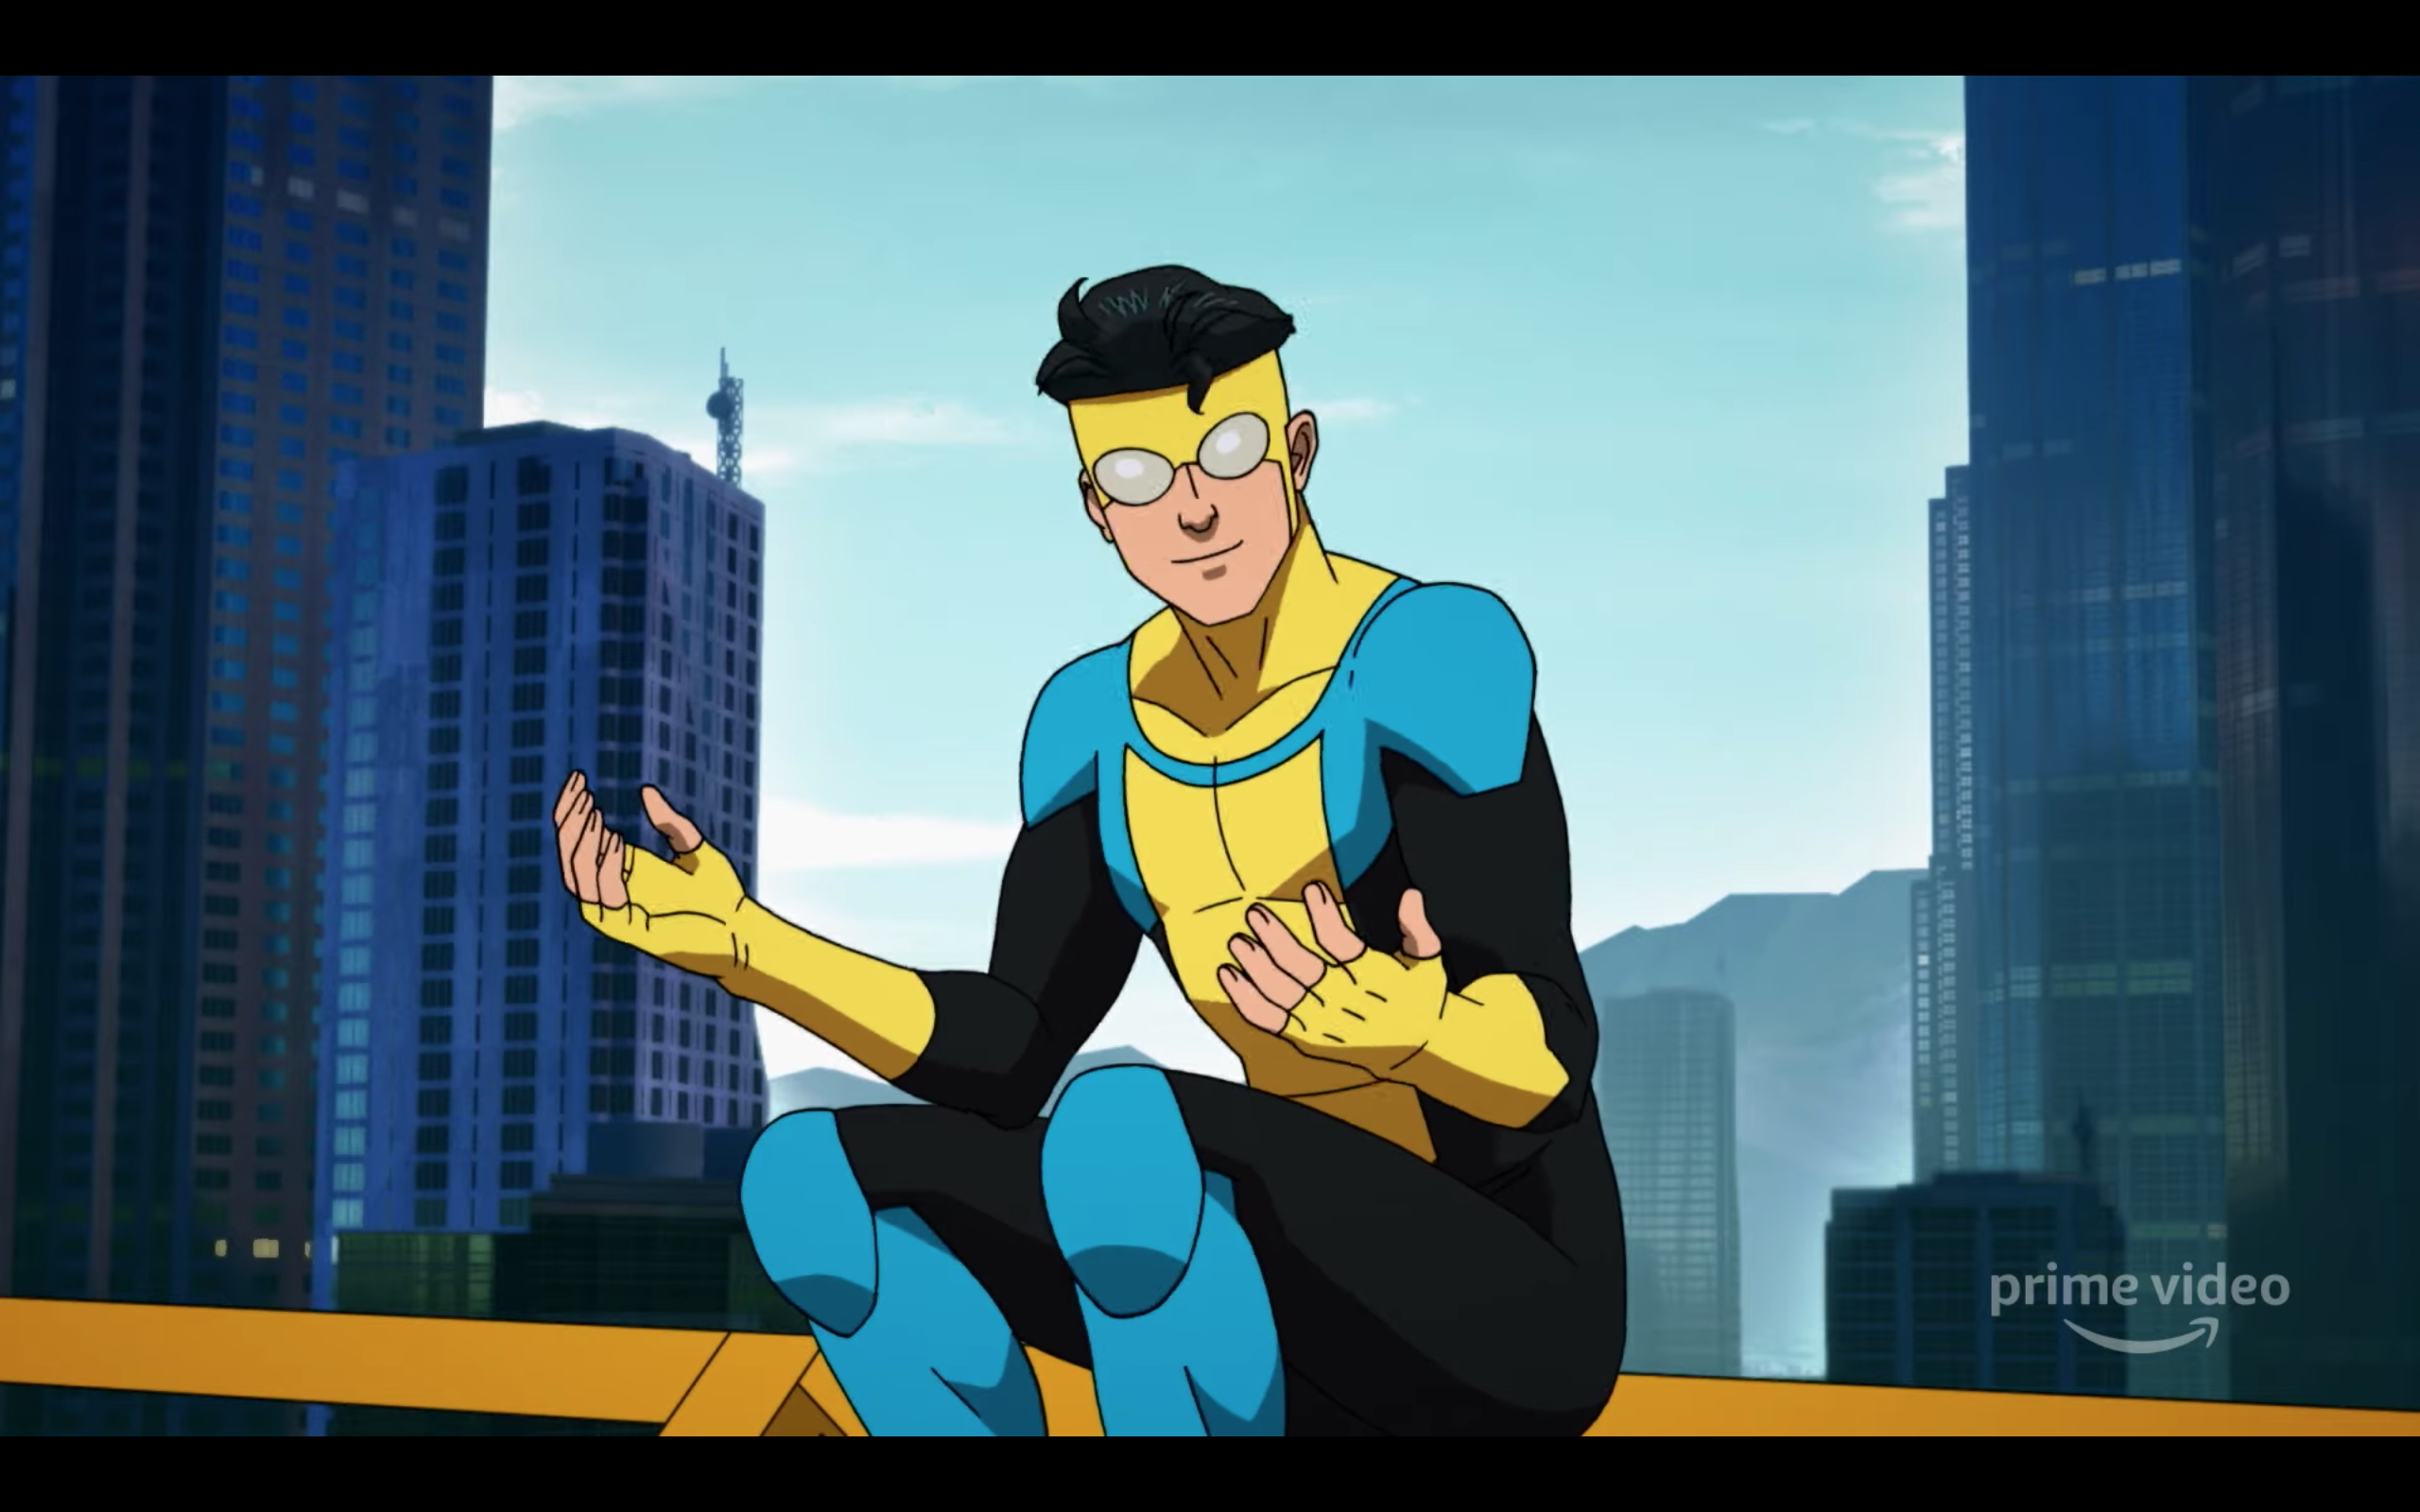 Amazon Releases 'Invincible' Teaser at New York Comic Con - Movies for March 2021 on Amazon Prime